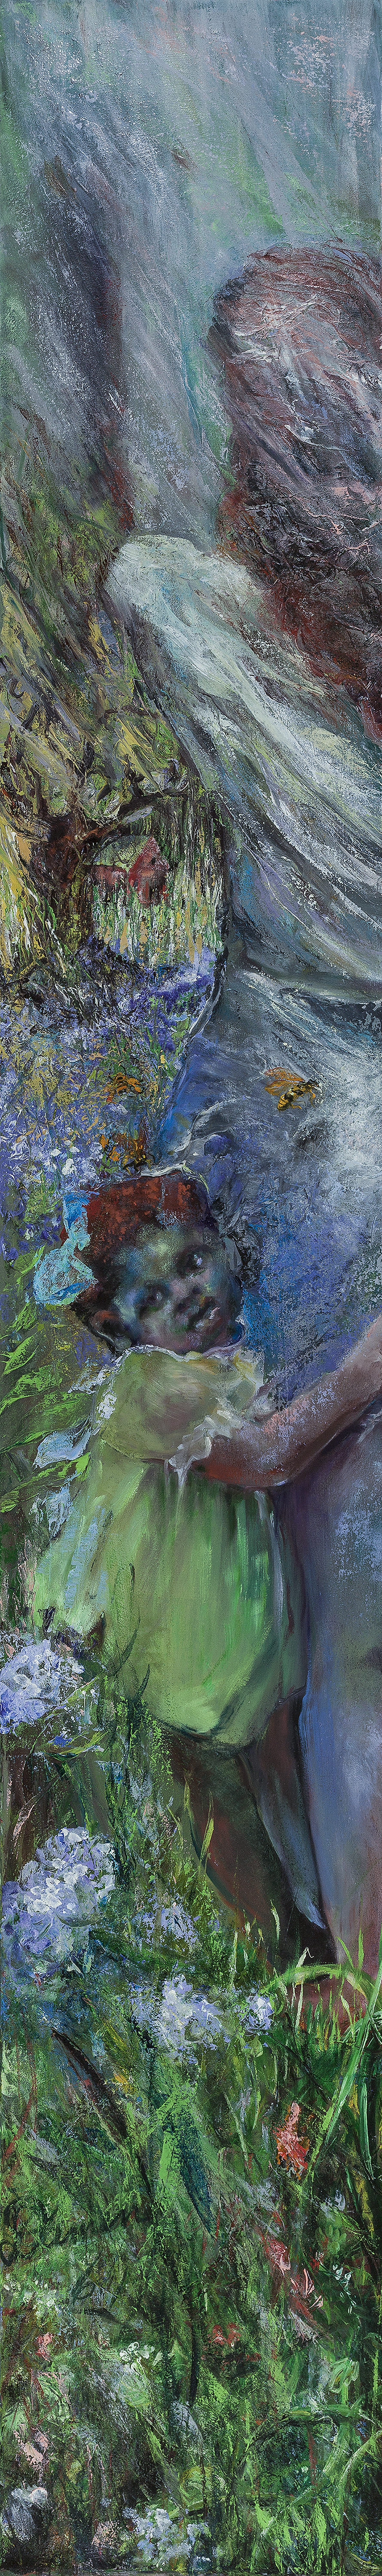 oil painting, photo sourced, poetry sourced, figurative, child, mother, separation